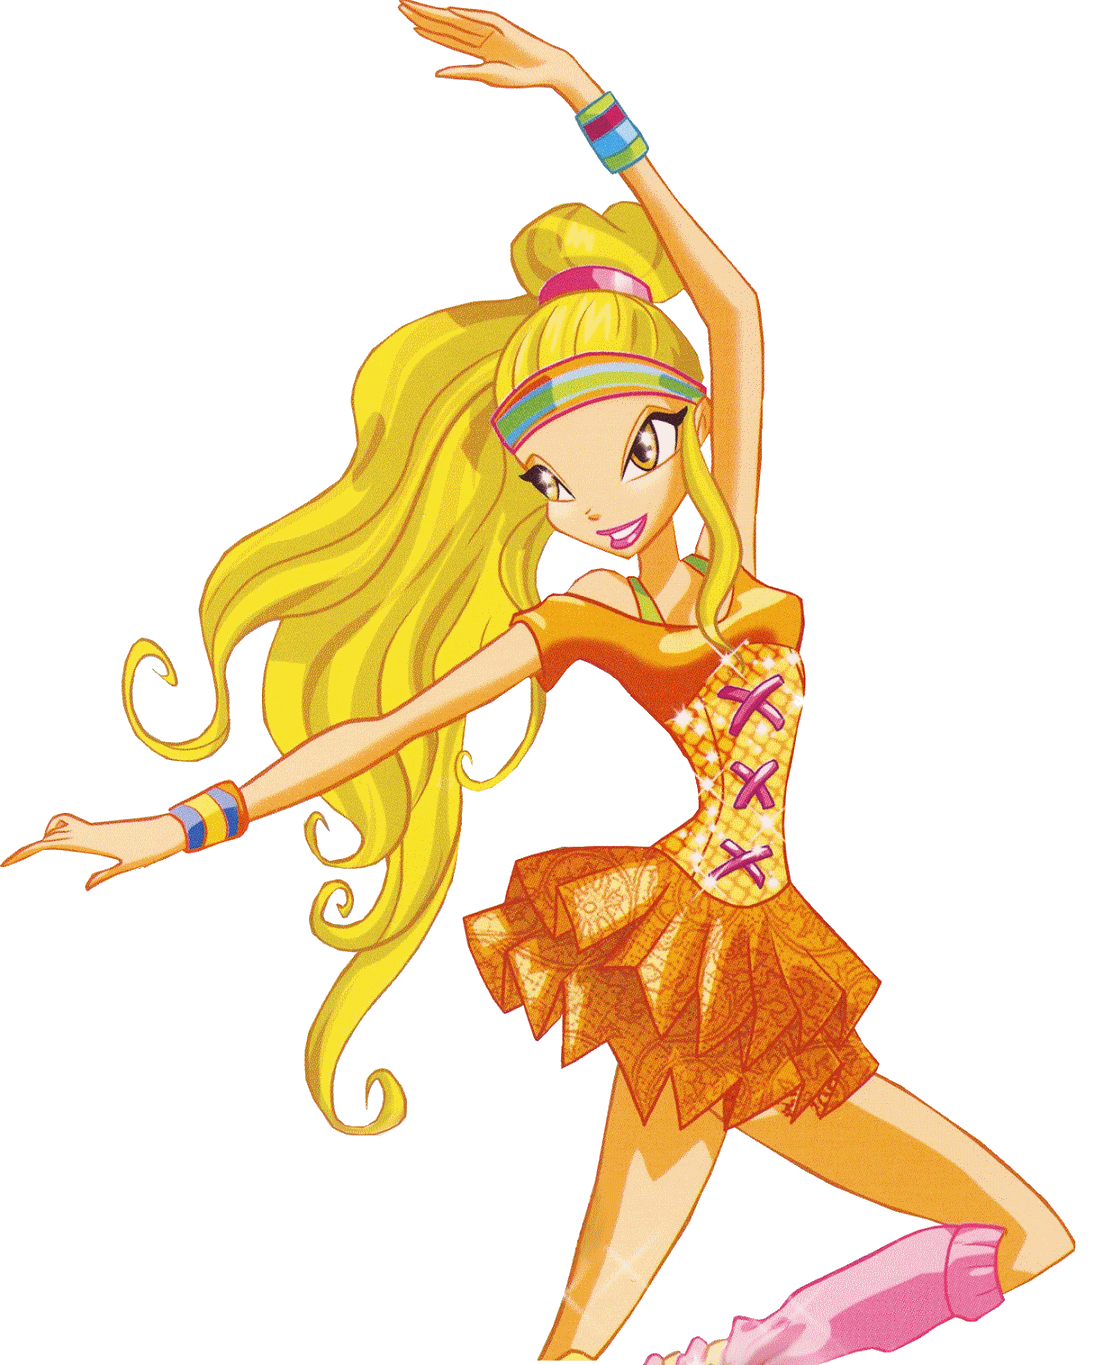 Image outfits season stella. Club clipart club dancing